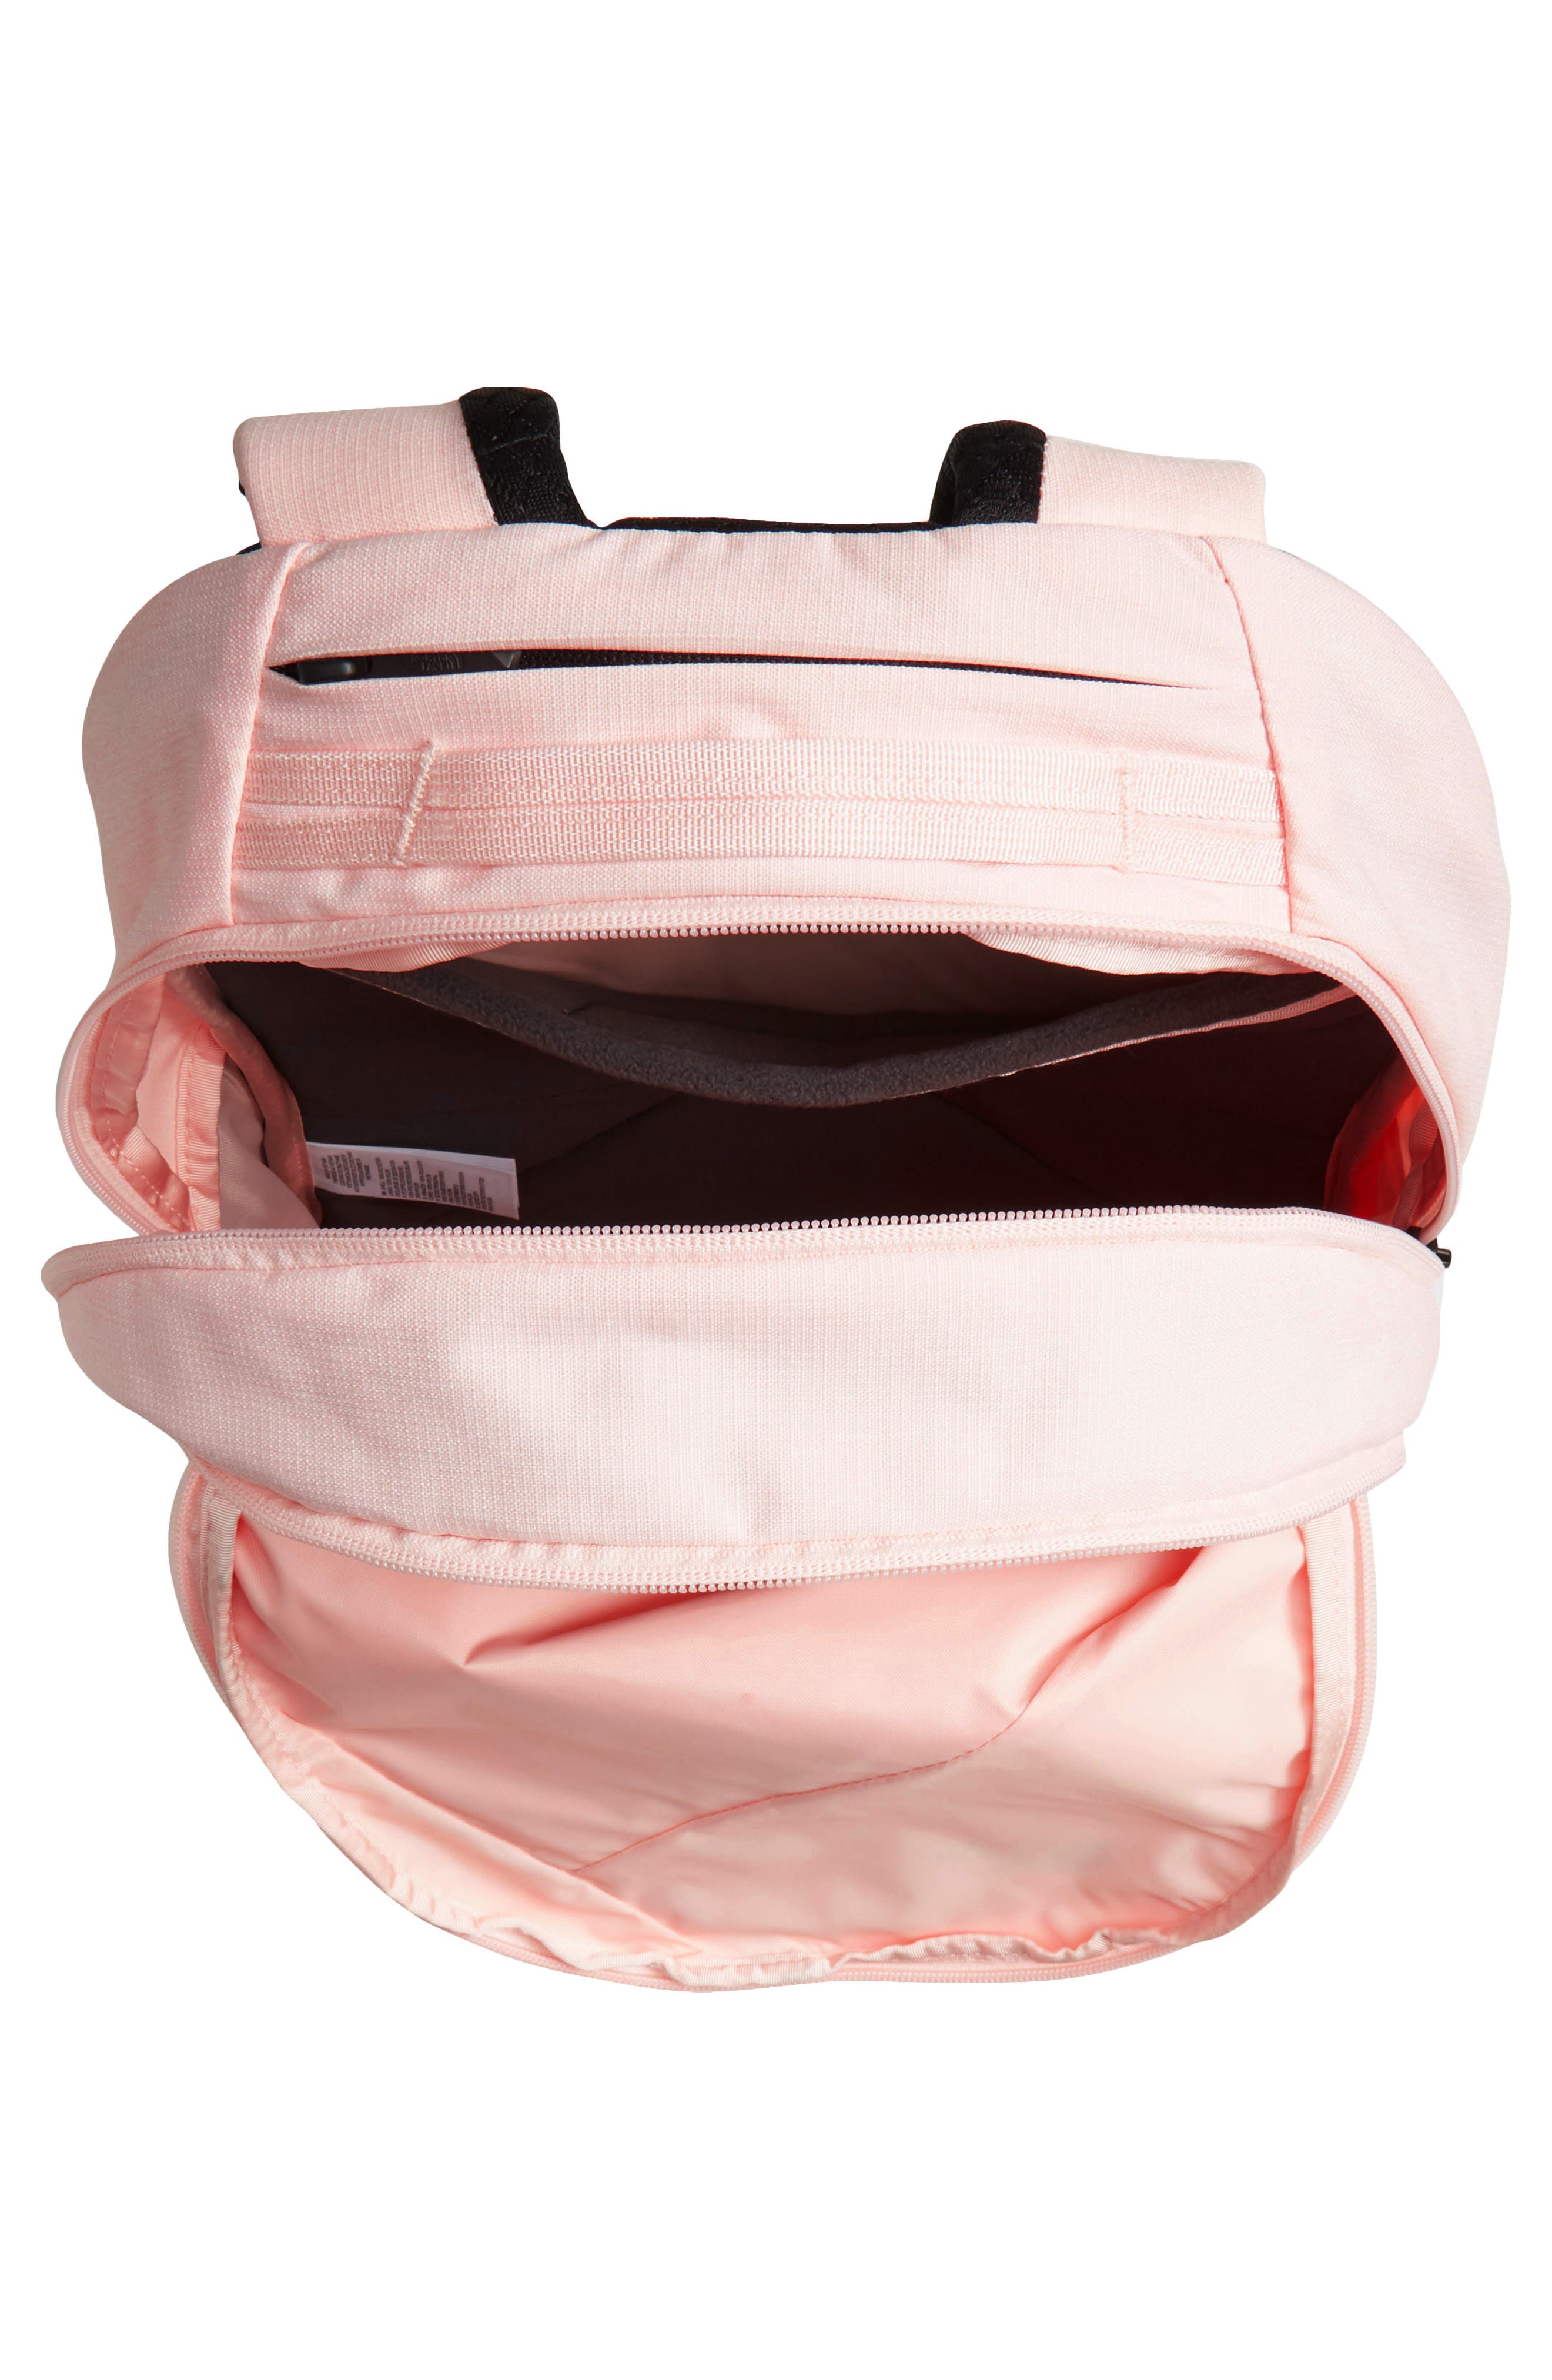 THE NORTH FACE, 'Isabella' Backpack, Alternate thumbnail 5, color, PINK LIGHT HEATHER/ TNF BLACK